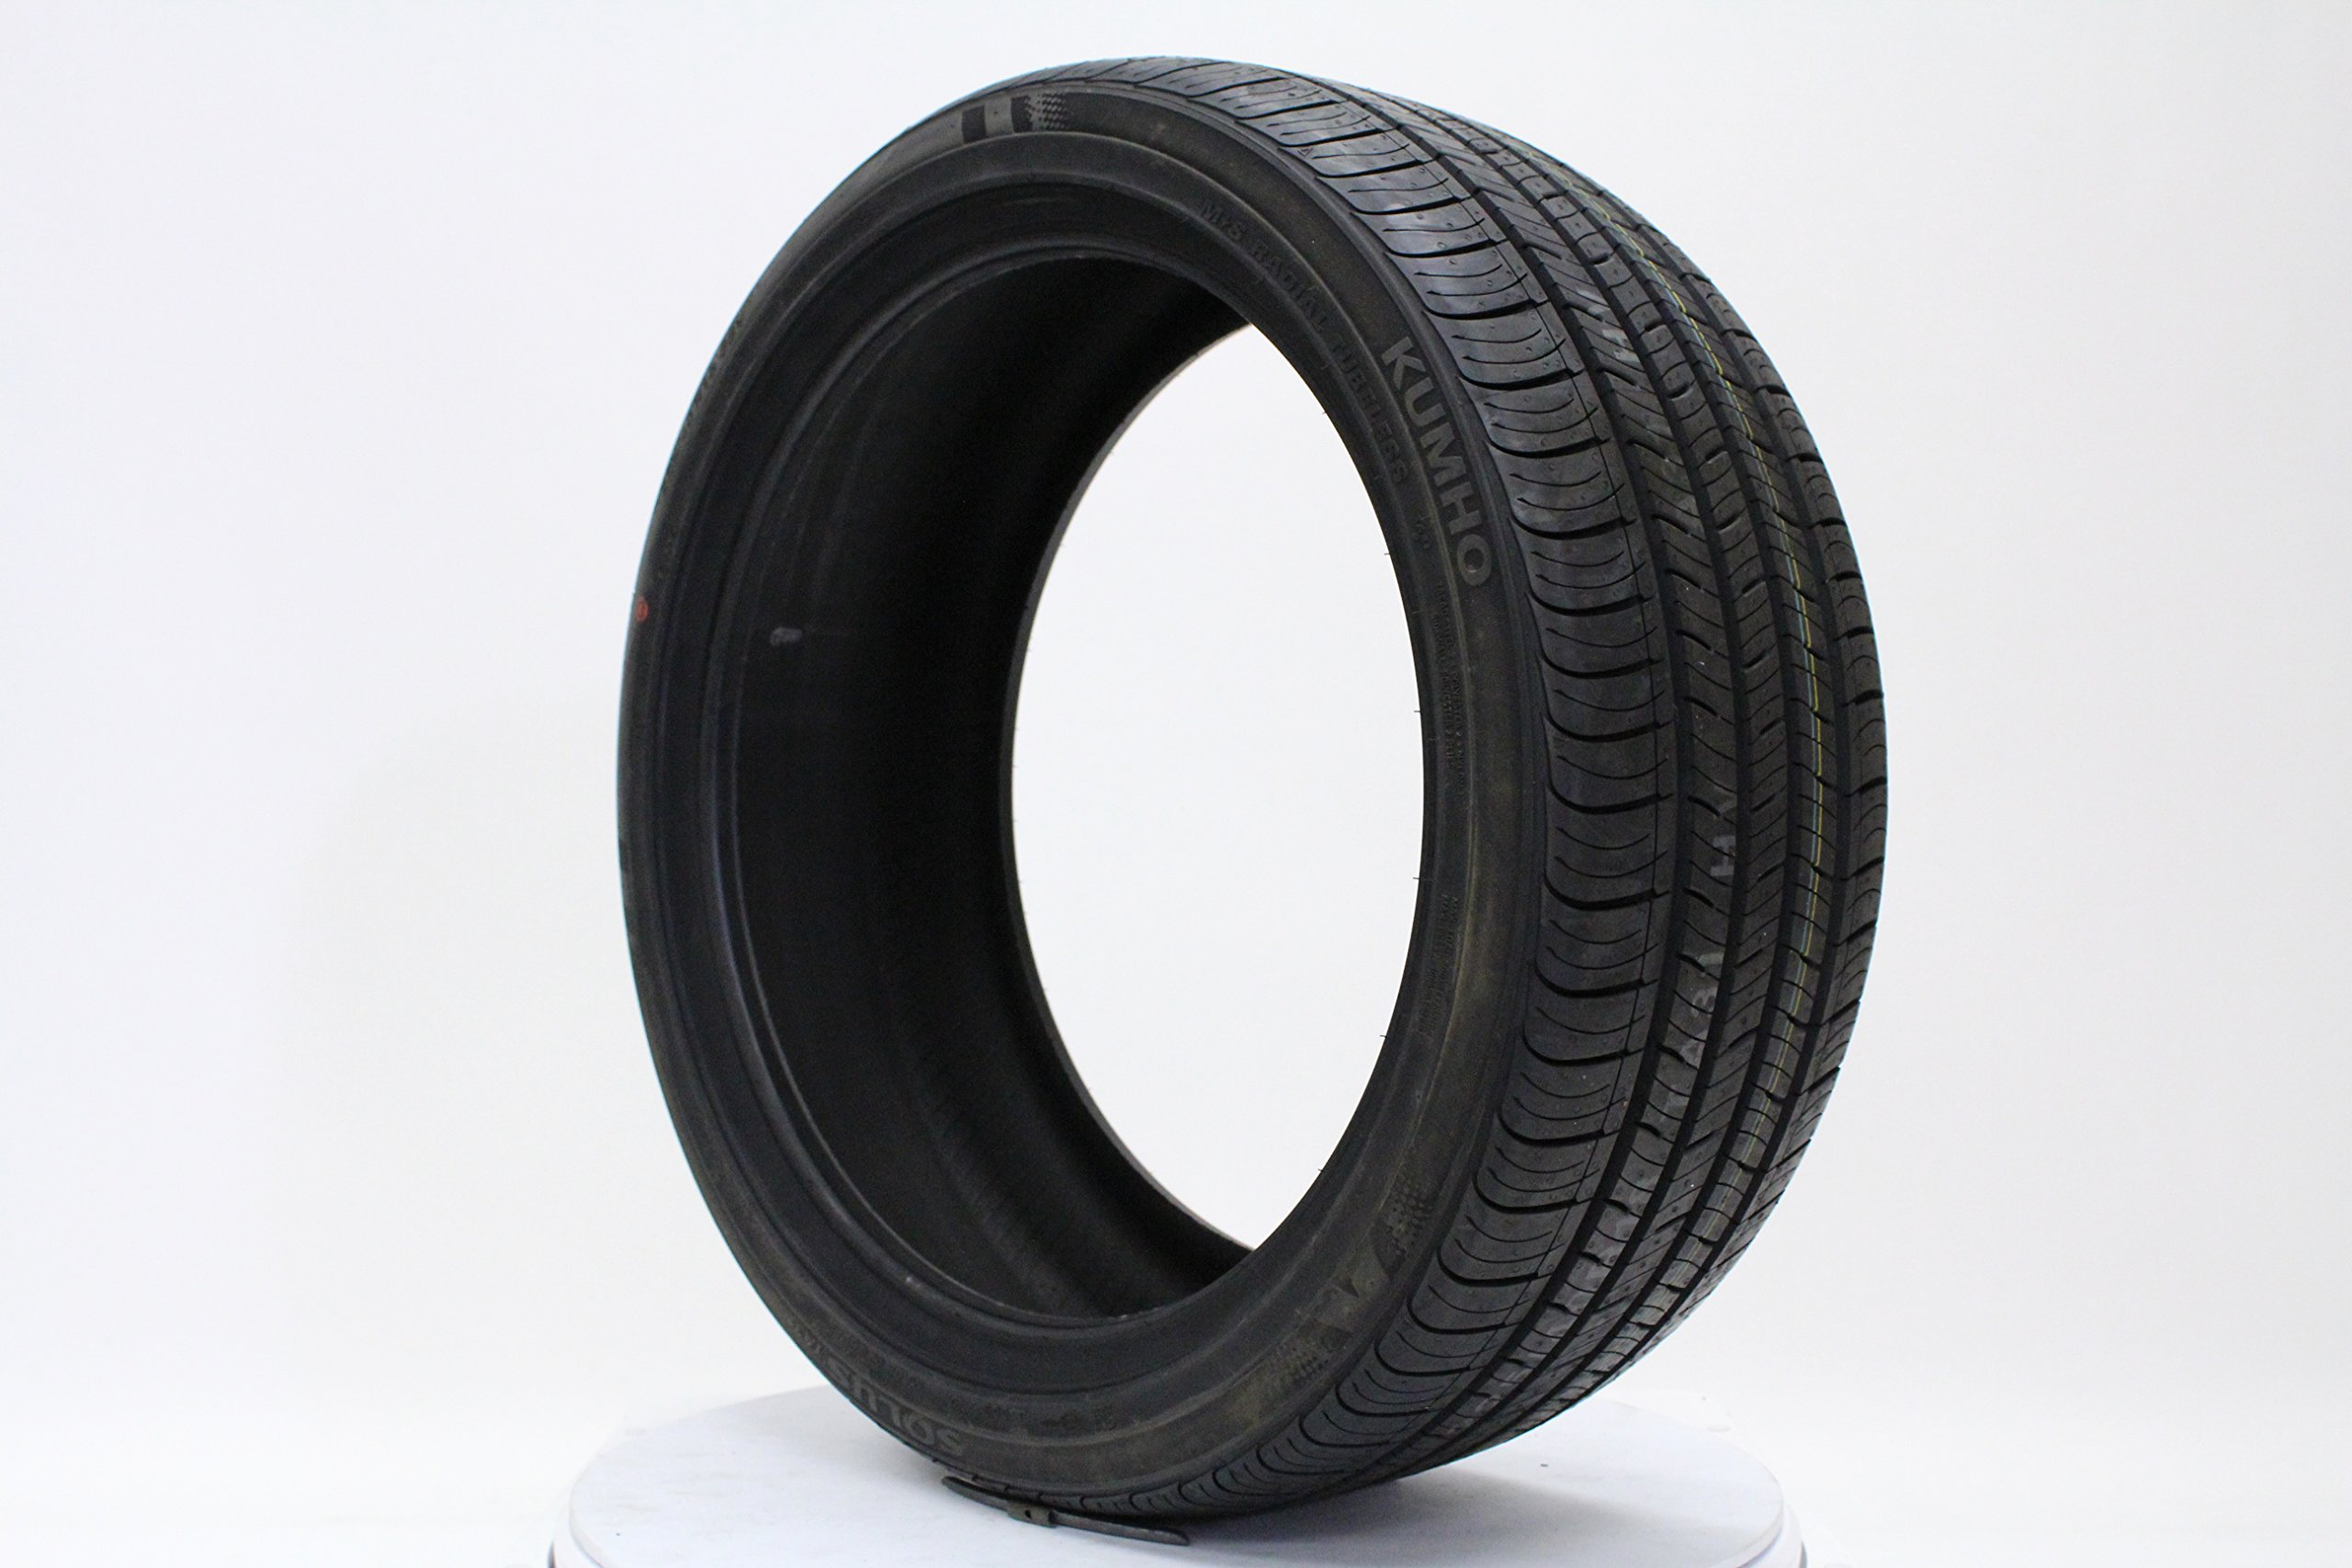 Kumho Solus TA31 Touring Radial Tire - 205/65R16 95H